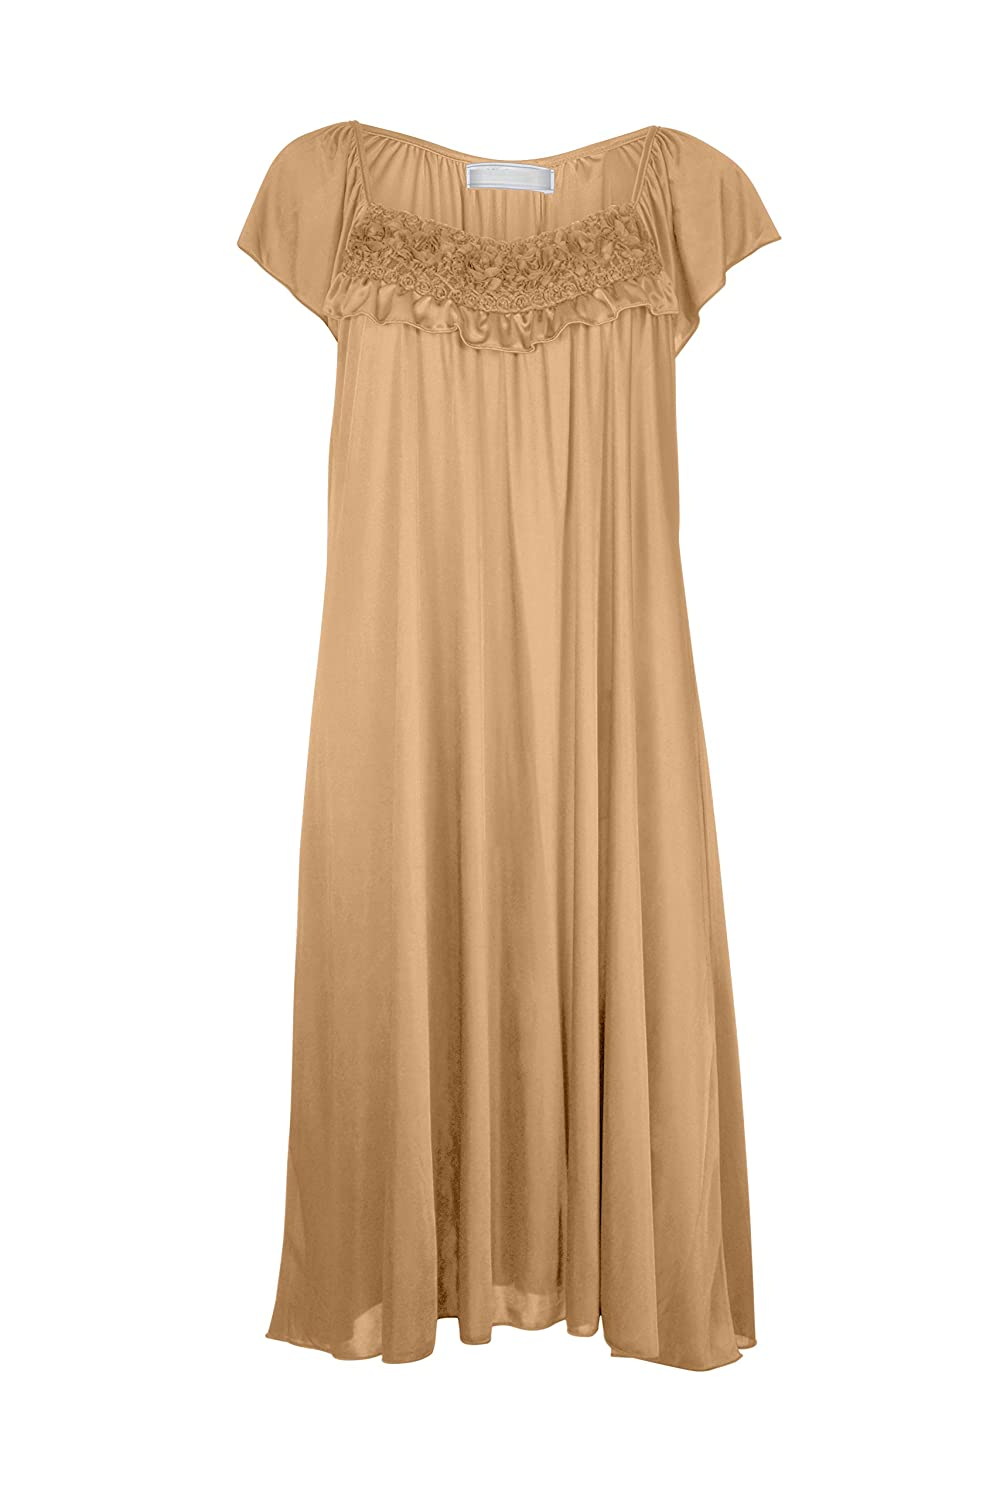 EZI Women's Satin Silk Ruffle Nightgown